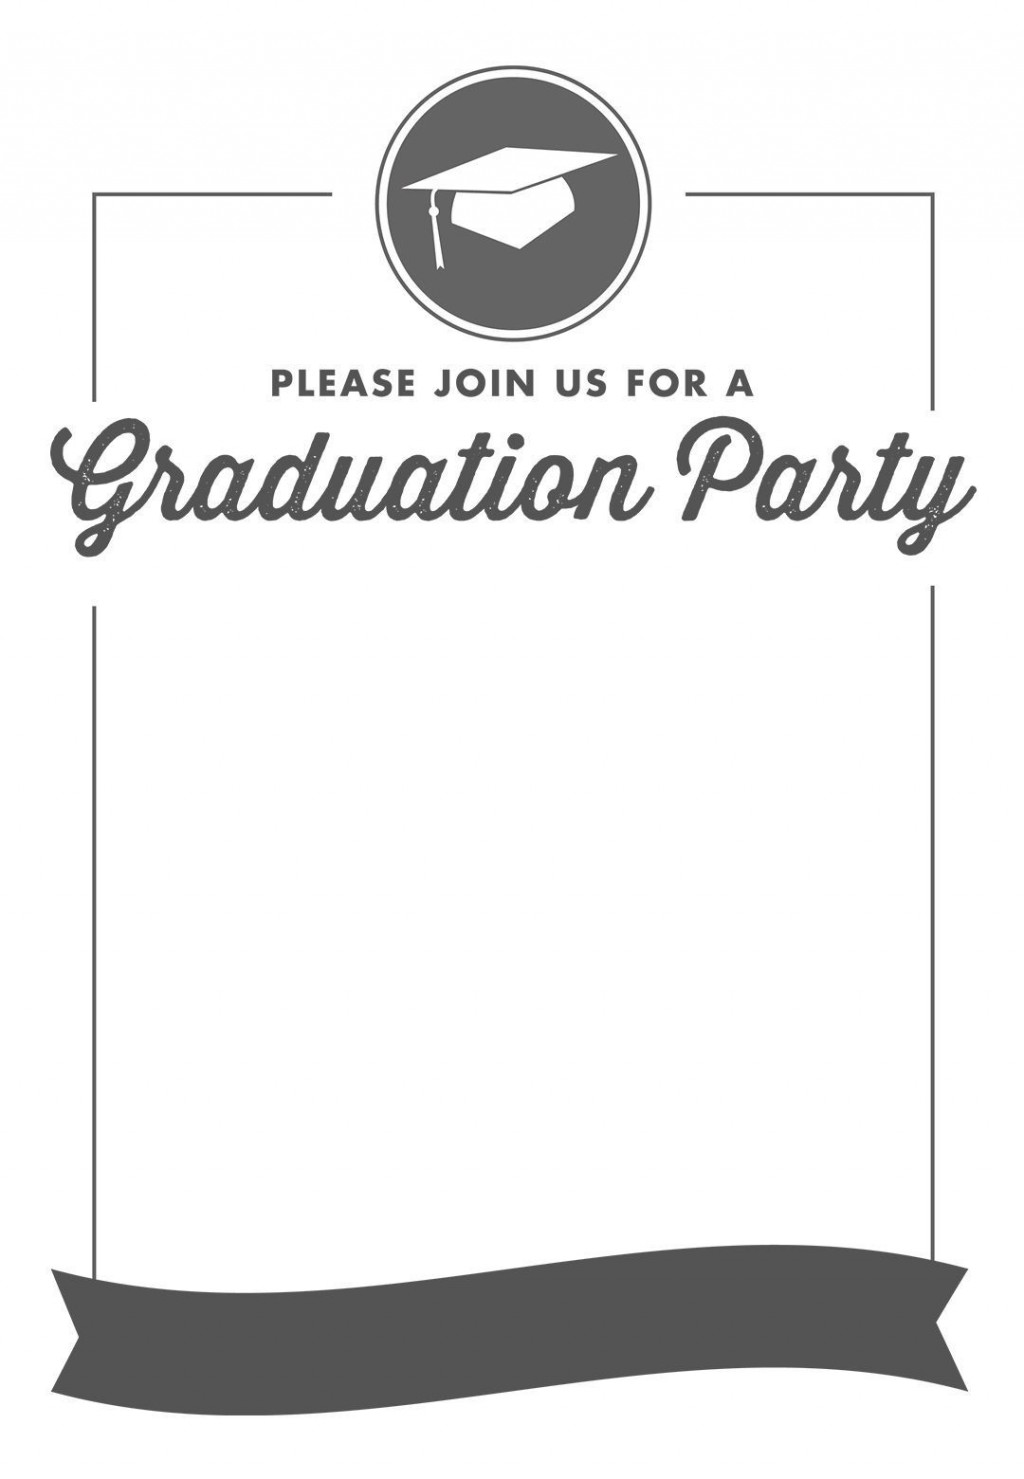 002 Unbelievable Free Graduation Invitation Template Printable High Resolution  Preschool Party KindergartenLarge